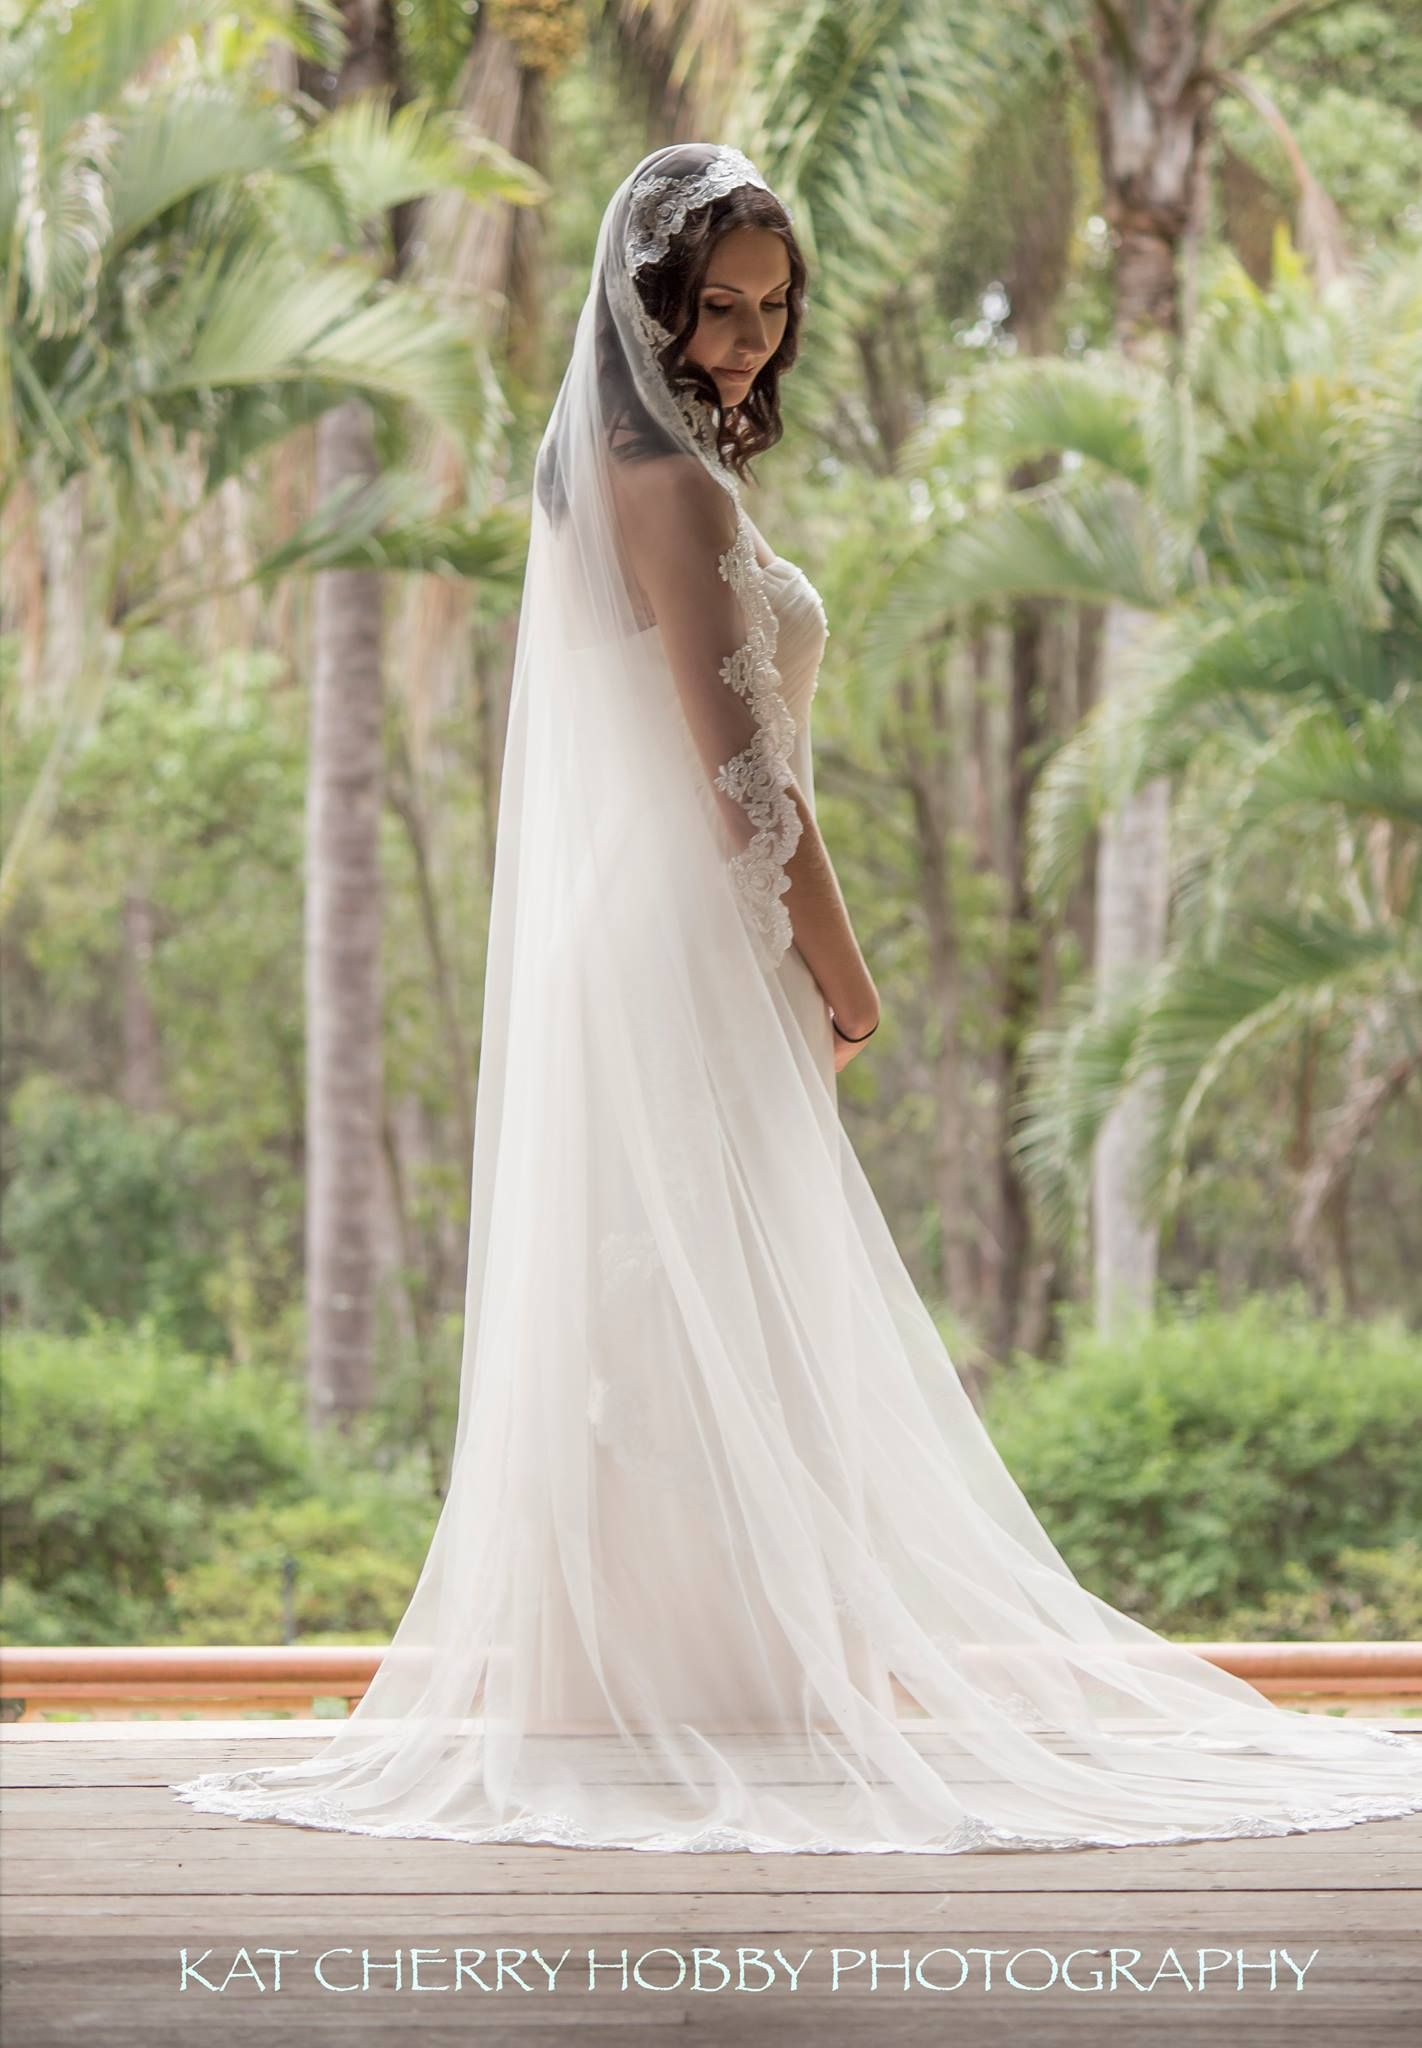 Photographer - Kat Cherry Hobby Photography Dress - Exquisite Gowns ...